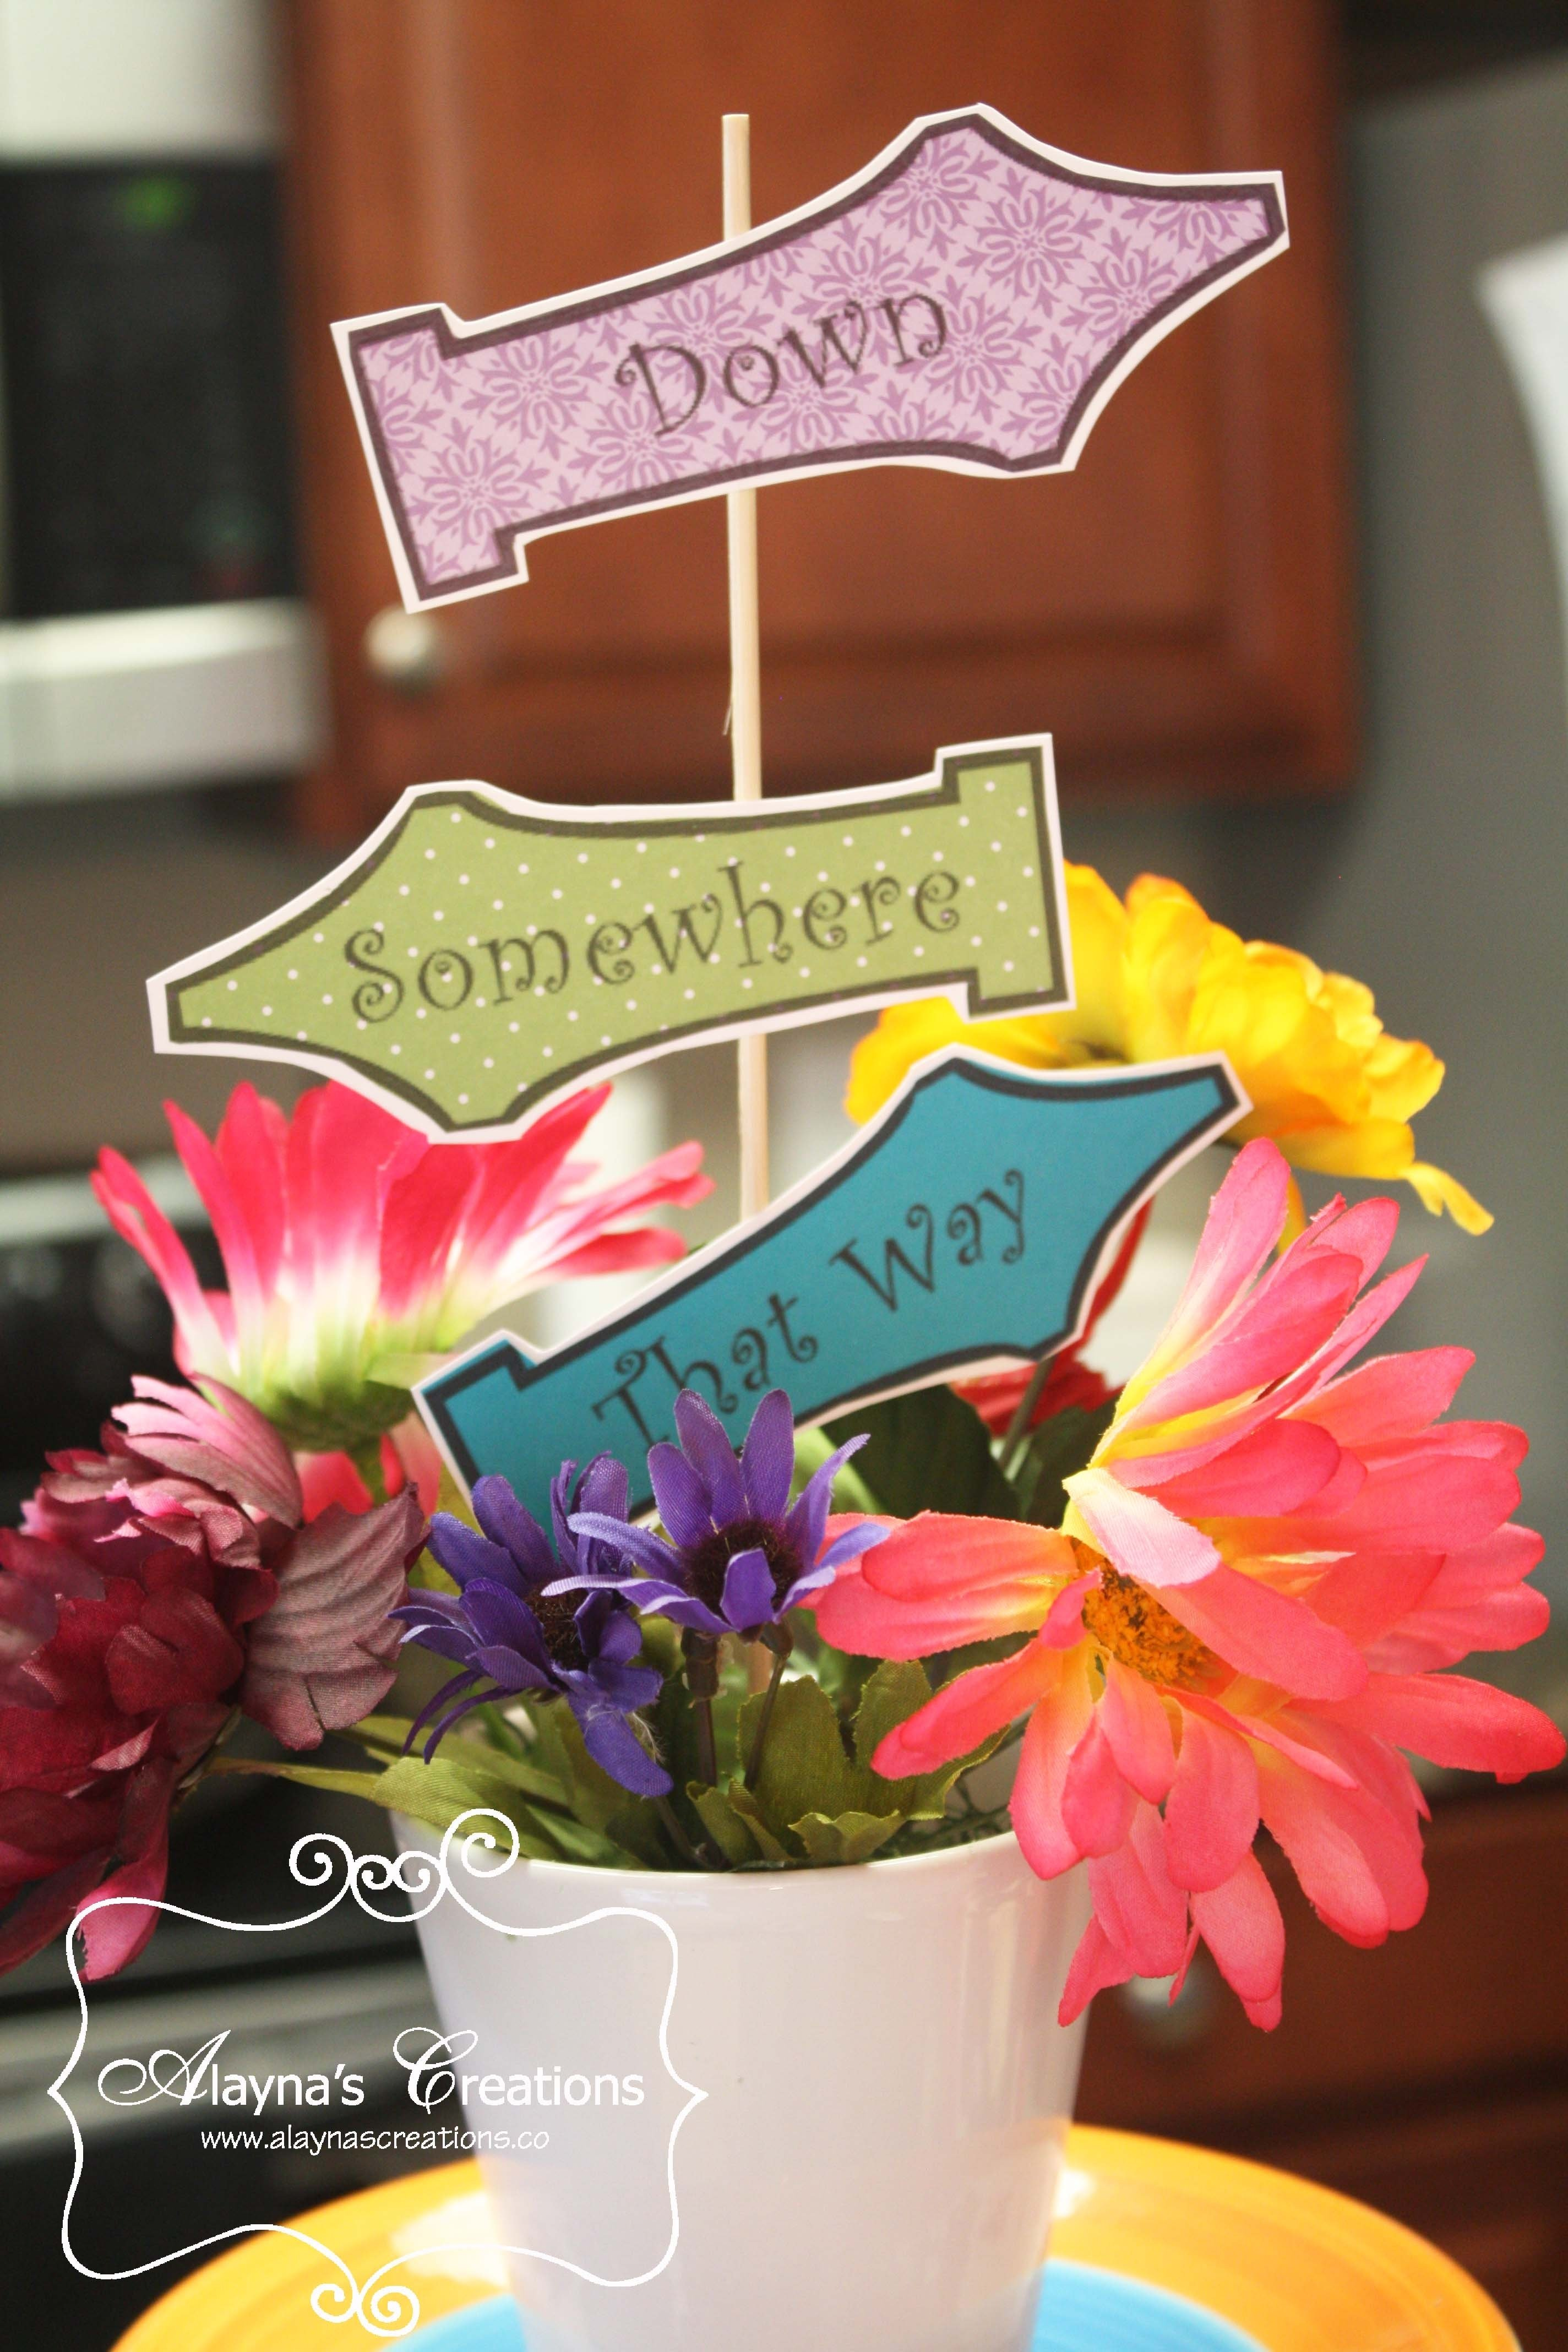 10 Lovable Alice In Wonderland Centerpiece Ideas alice in wonderland archives diy home decor and crafts